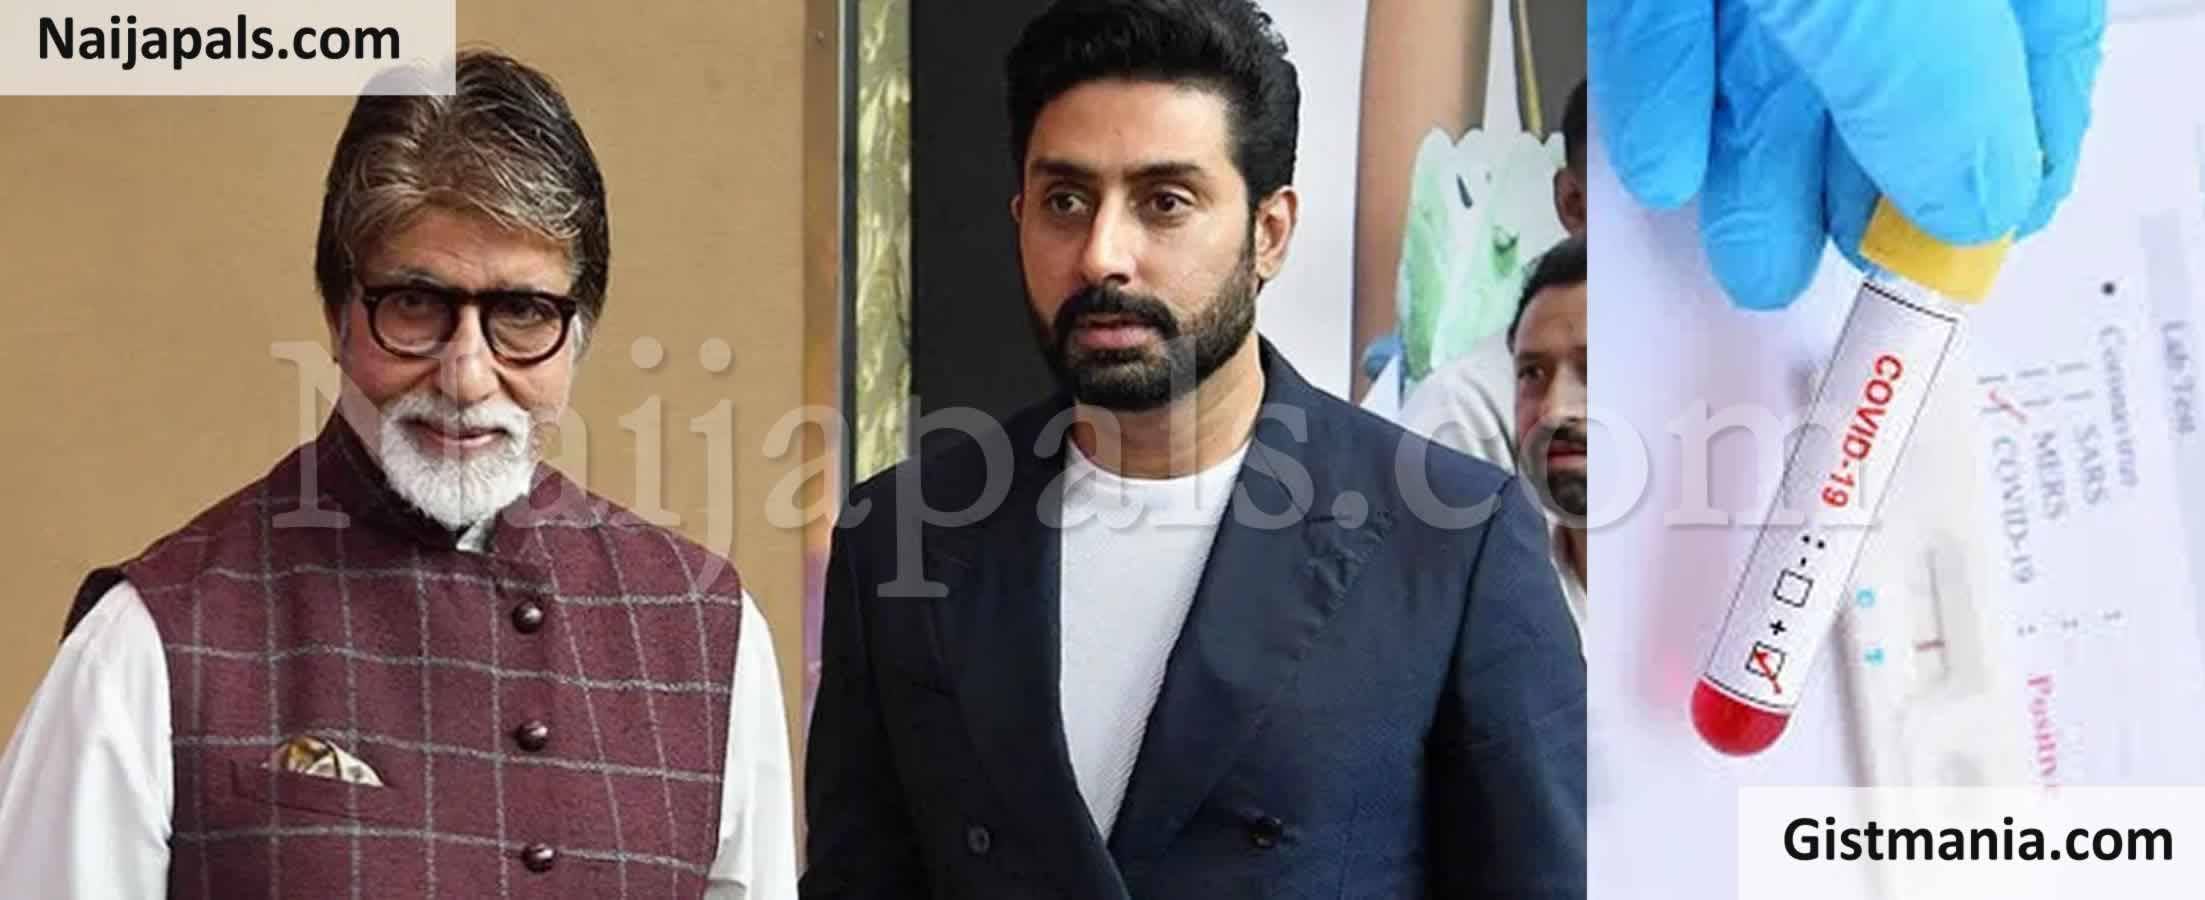 <img alt='.' class='lazyload' data-src='https://img.gistmania.com/emot/news.gif' /> <b>Legendary Bollywood Actor, Amitabh Bachchan & His Son, Abhishek Test Positive For COVID-19</b>